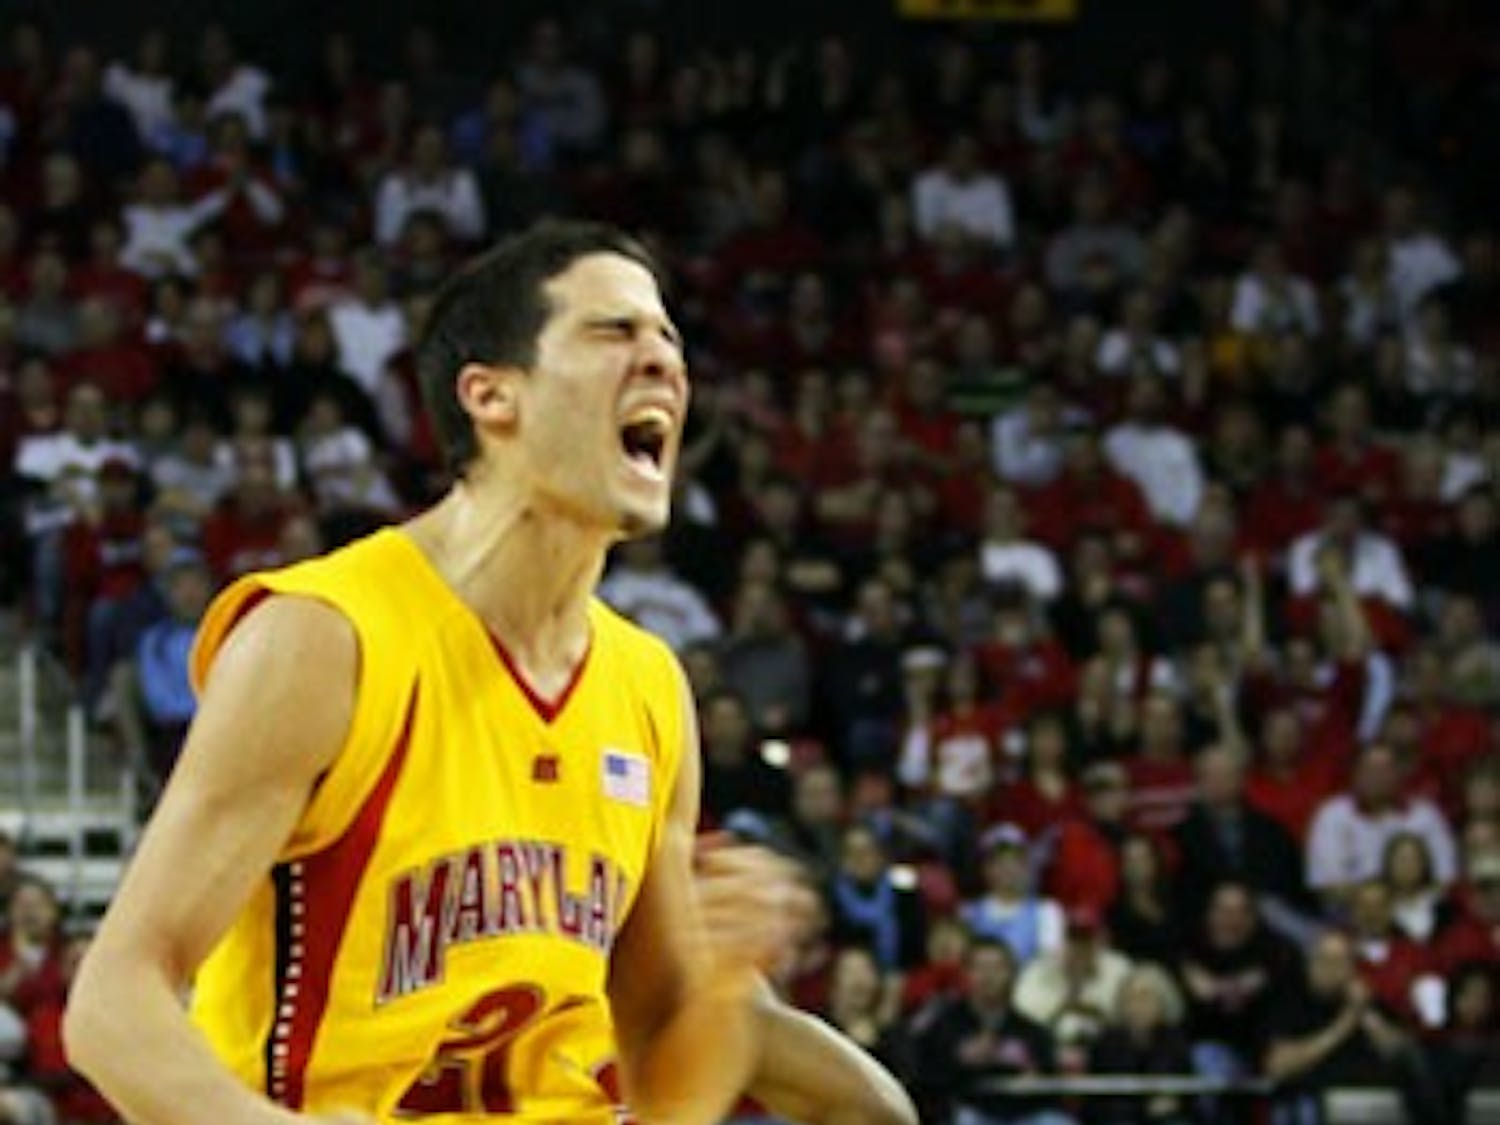 Maryland guard Greivis Vasquez gave the Tar Heels fits Saturday ? and put up the first triple-double for UMd. in 22 years.